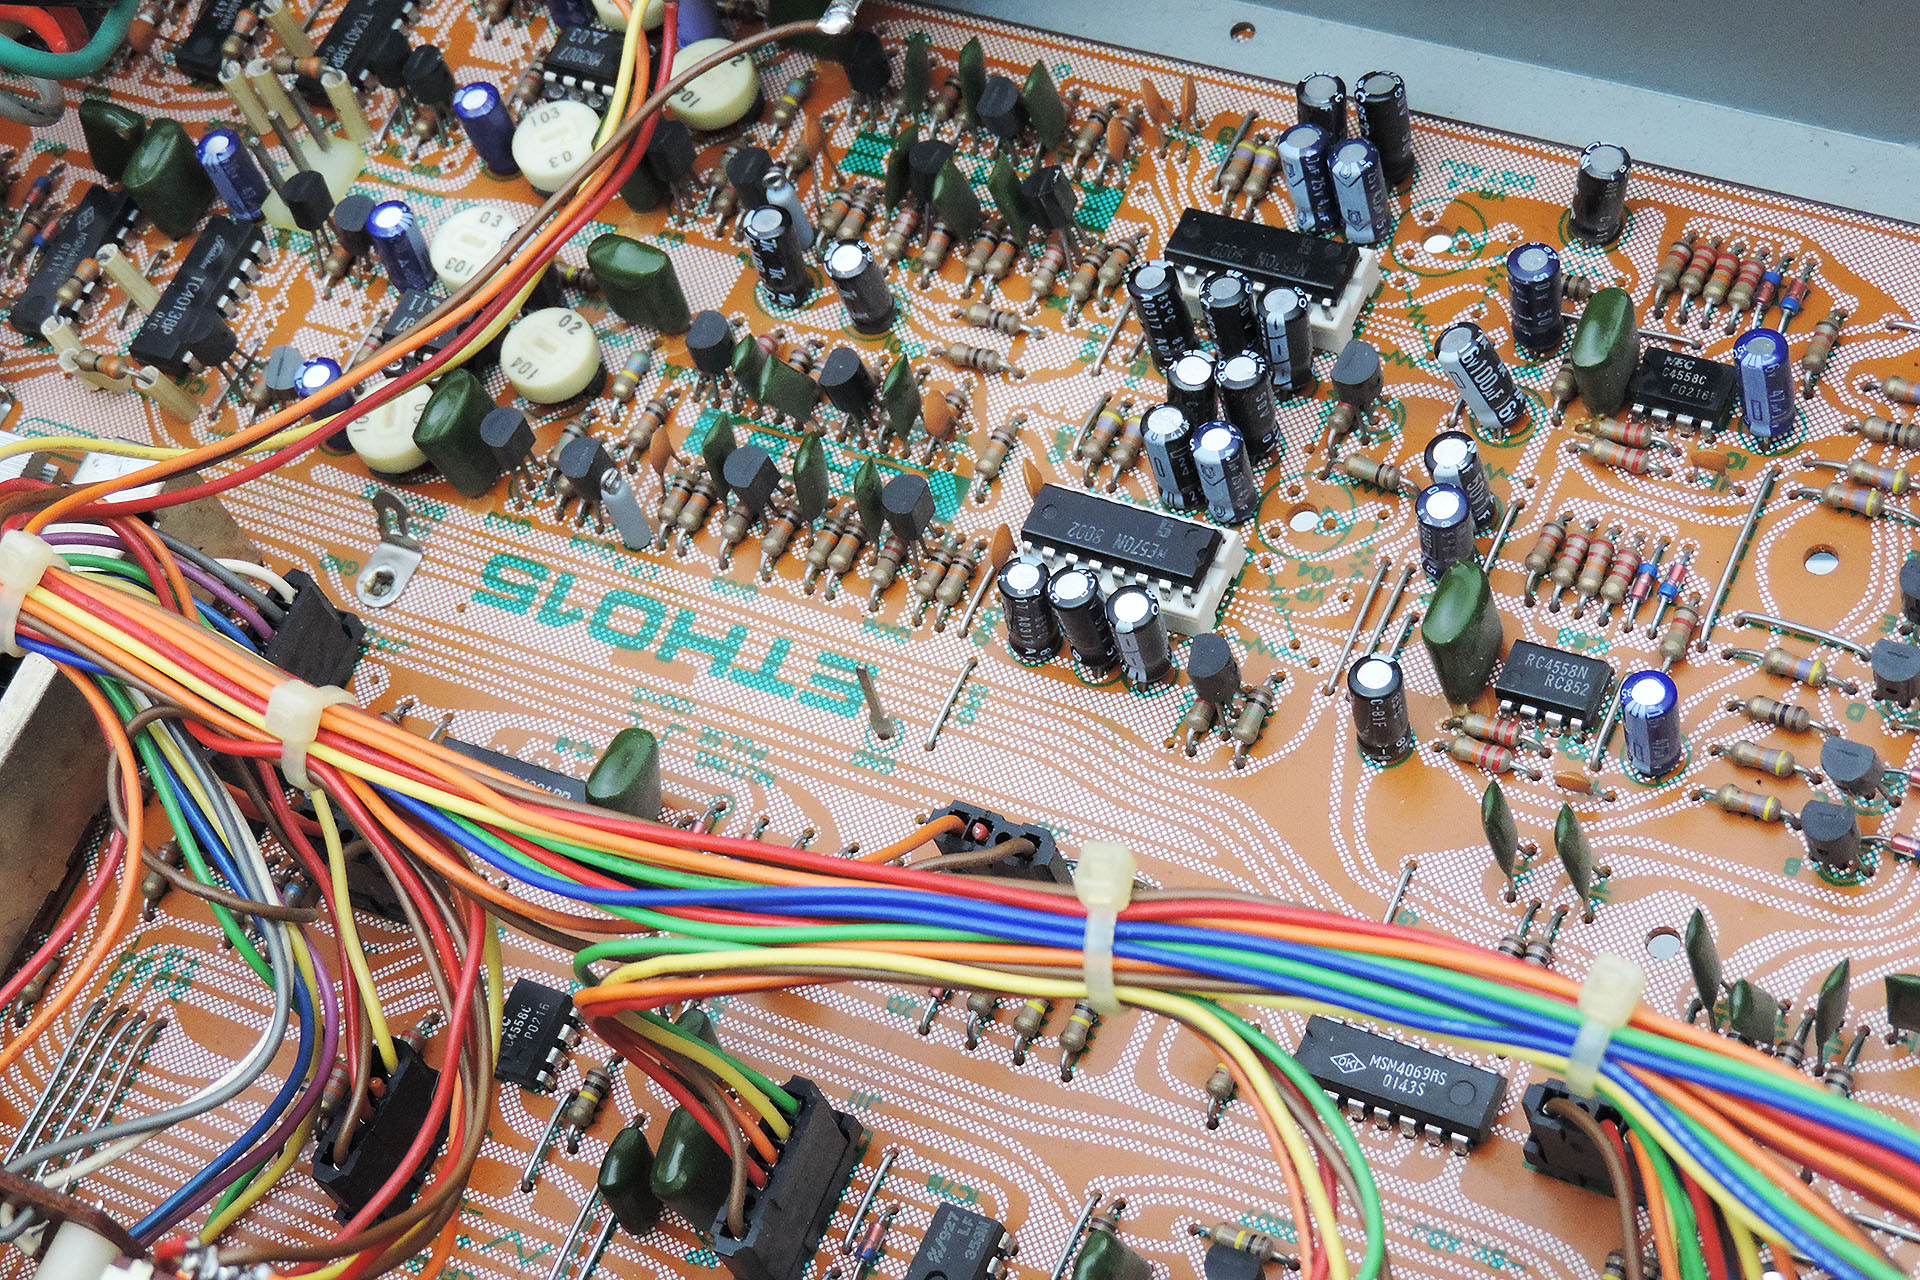 A classic example of unreadable PCBs from the seventies